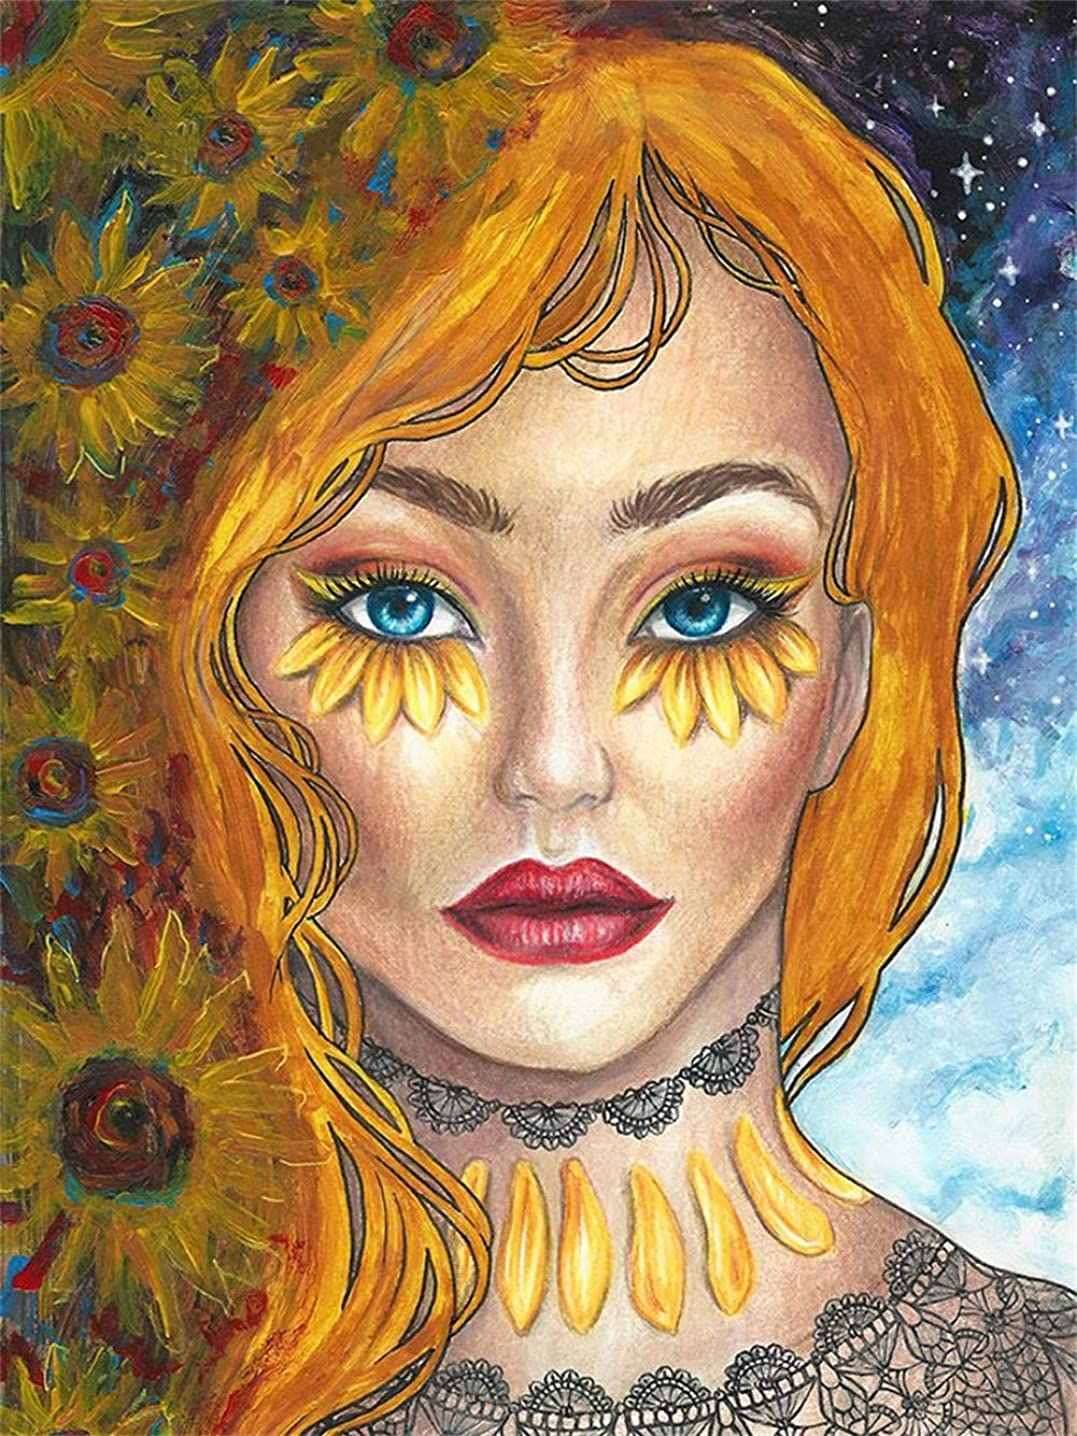 Diamond Painting Kits for Adults, 5D Diamond Art Kits with Full Drills Painting by Number Kits - Great Decor for Living Room,Office,Kitchen,Shop (Sunflower Woman)